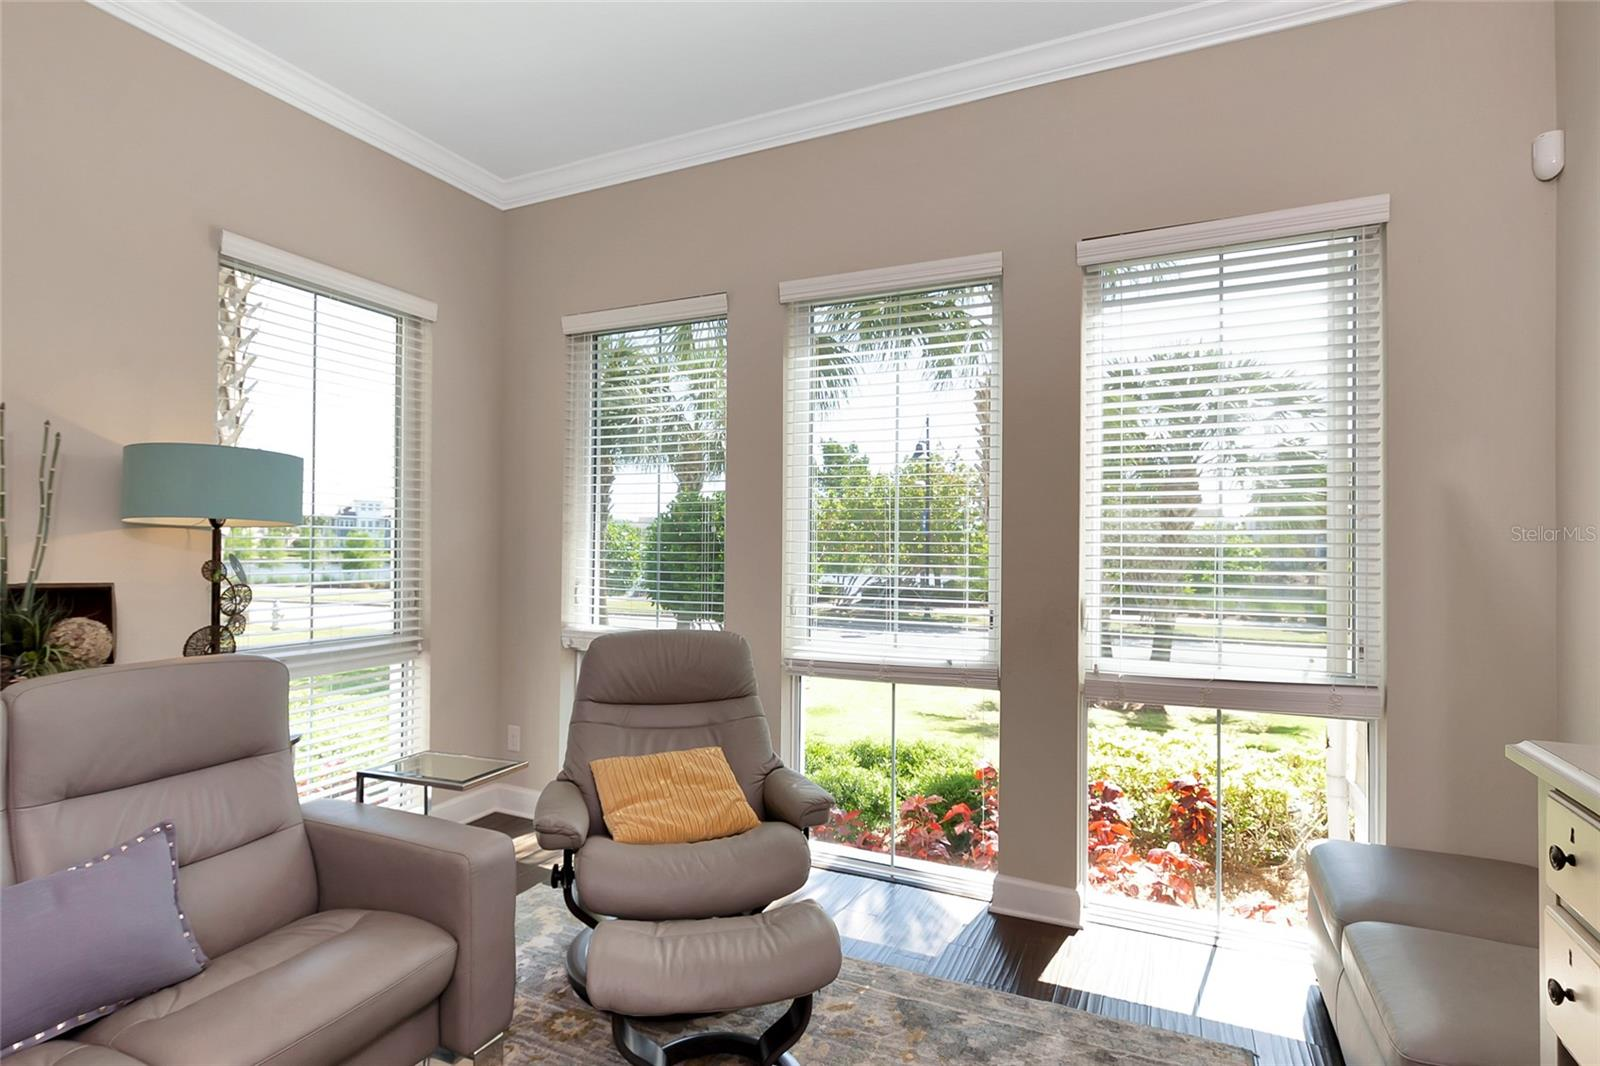 Condo for sale at 303 Compass Point Dr #101, Bradenton, FL 34209 - MLS Number is A4499547